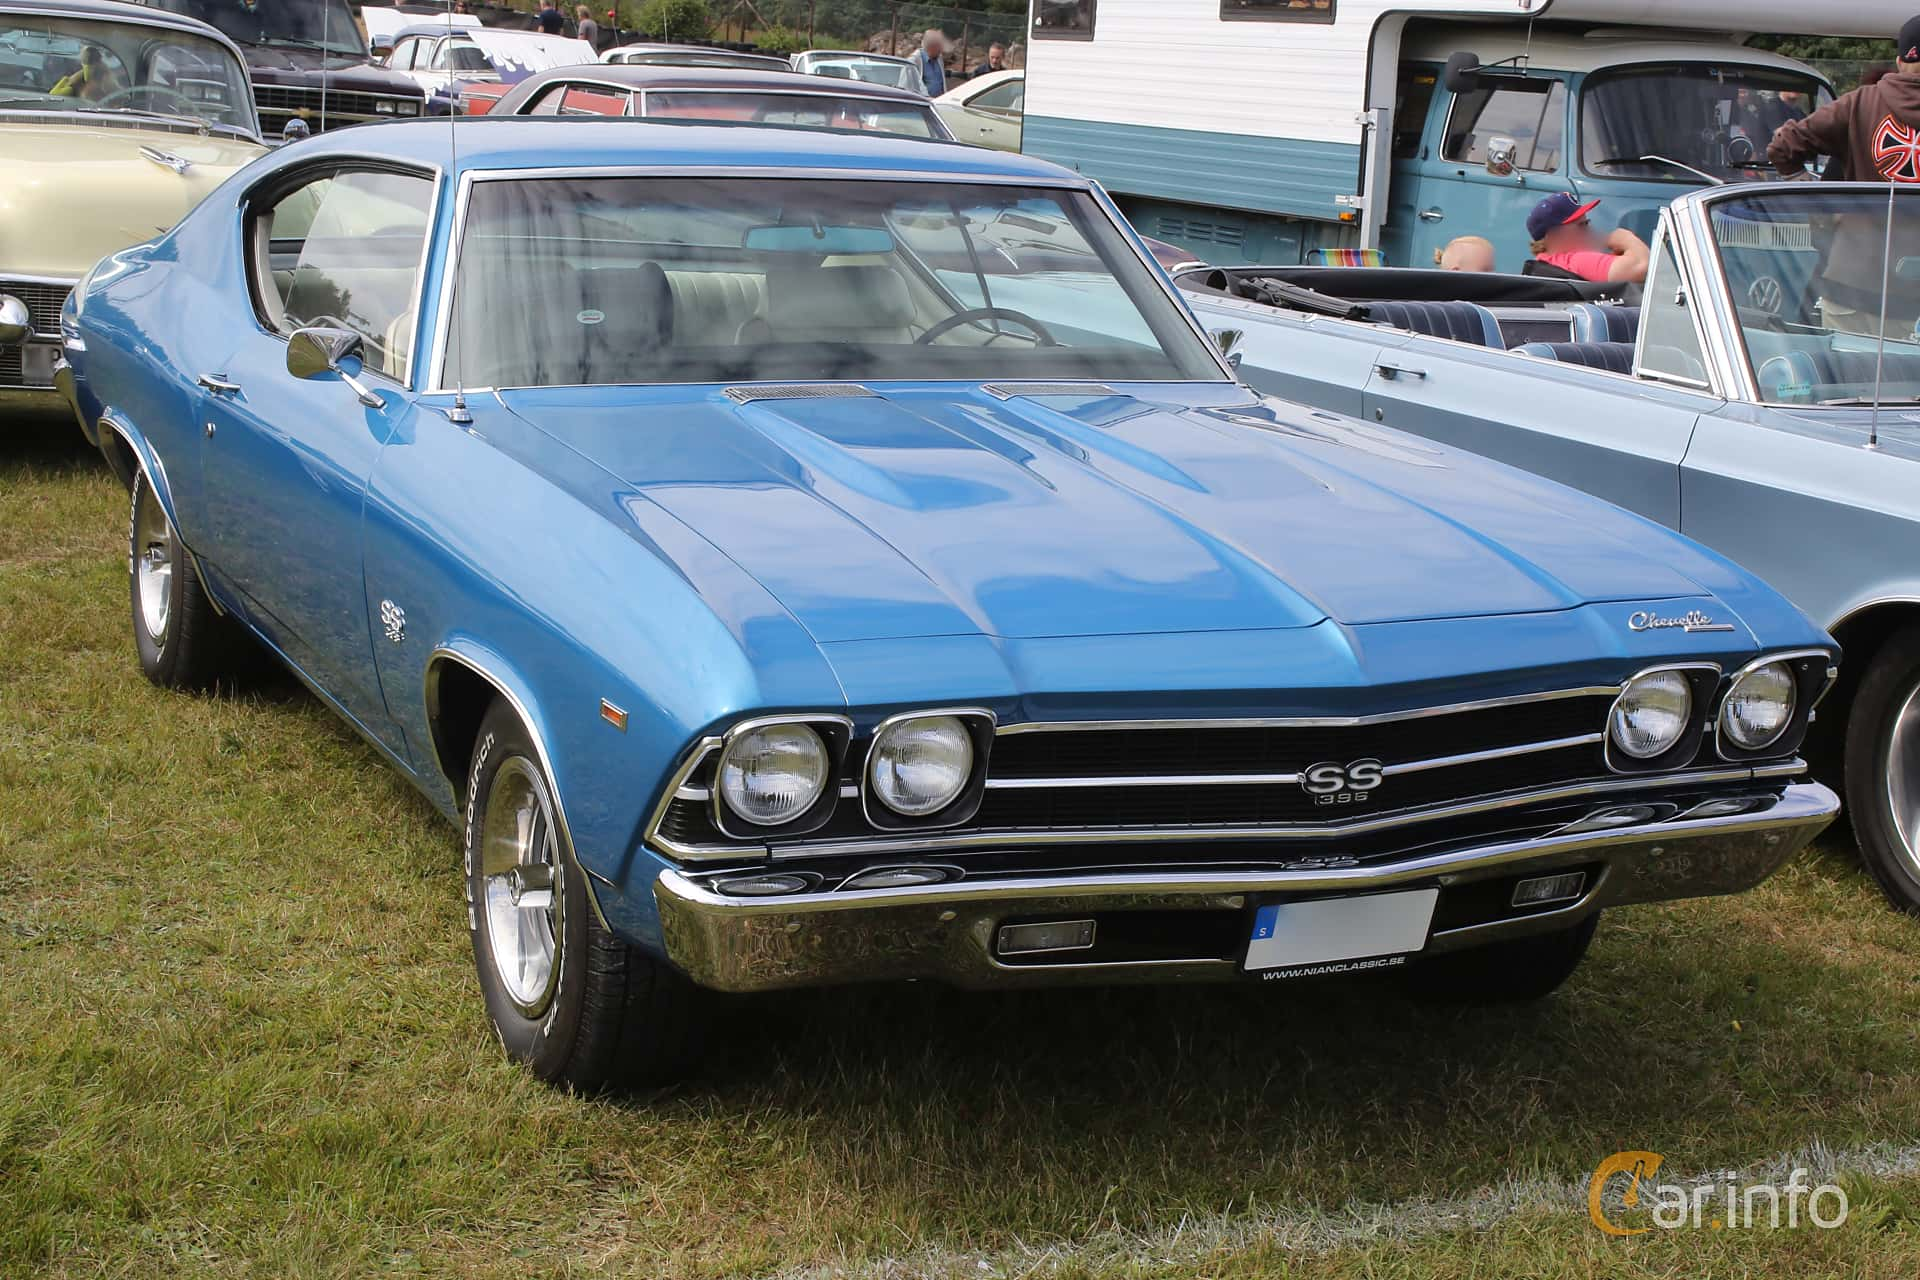 2016 Chevelle Ss >> 1 Images Of Chevrolet Chevelle Ss 396 6 5 V8 Manual 329hp